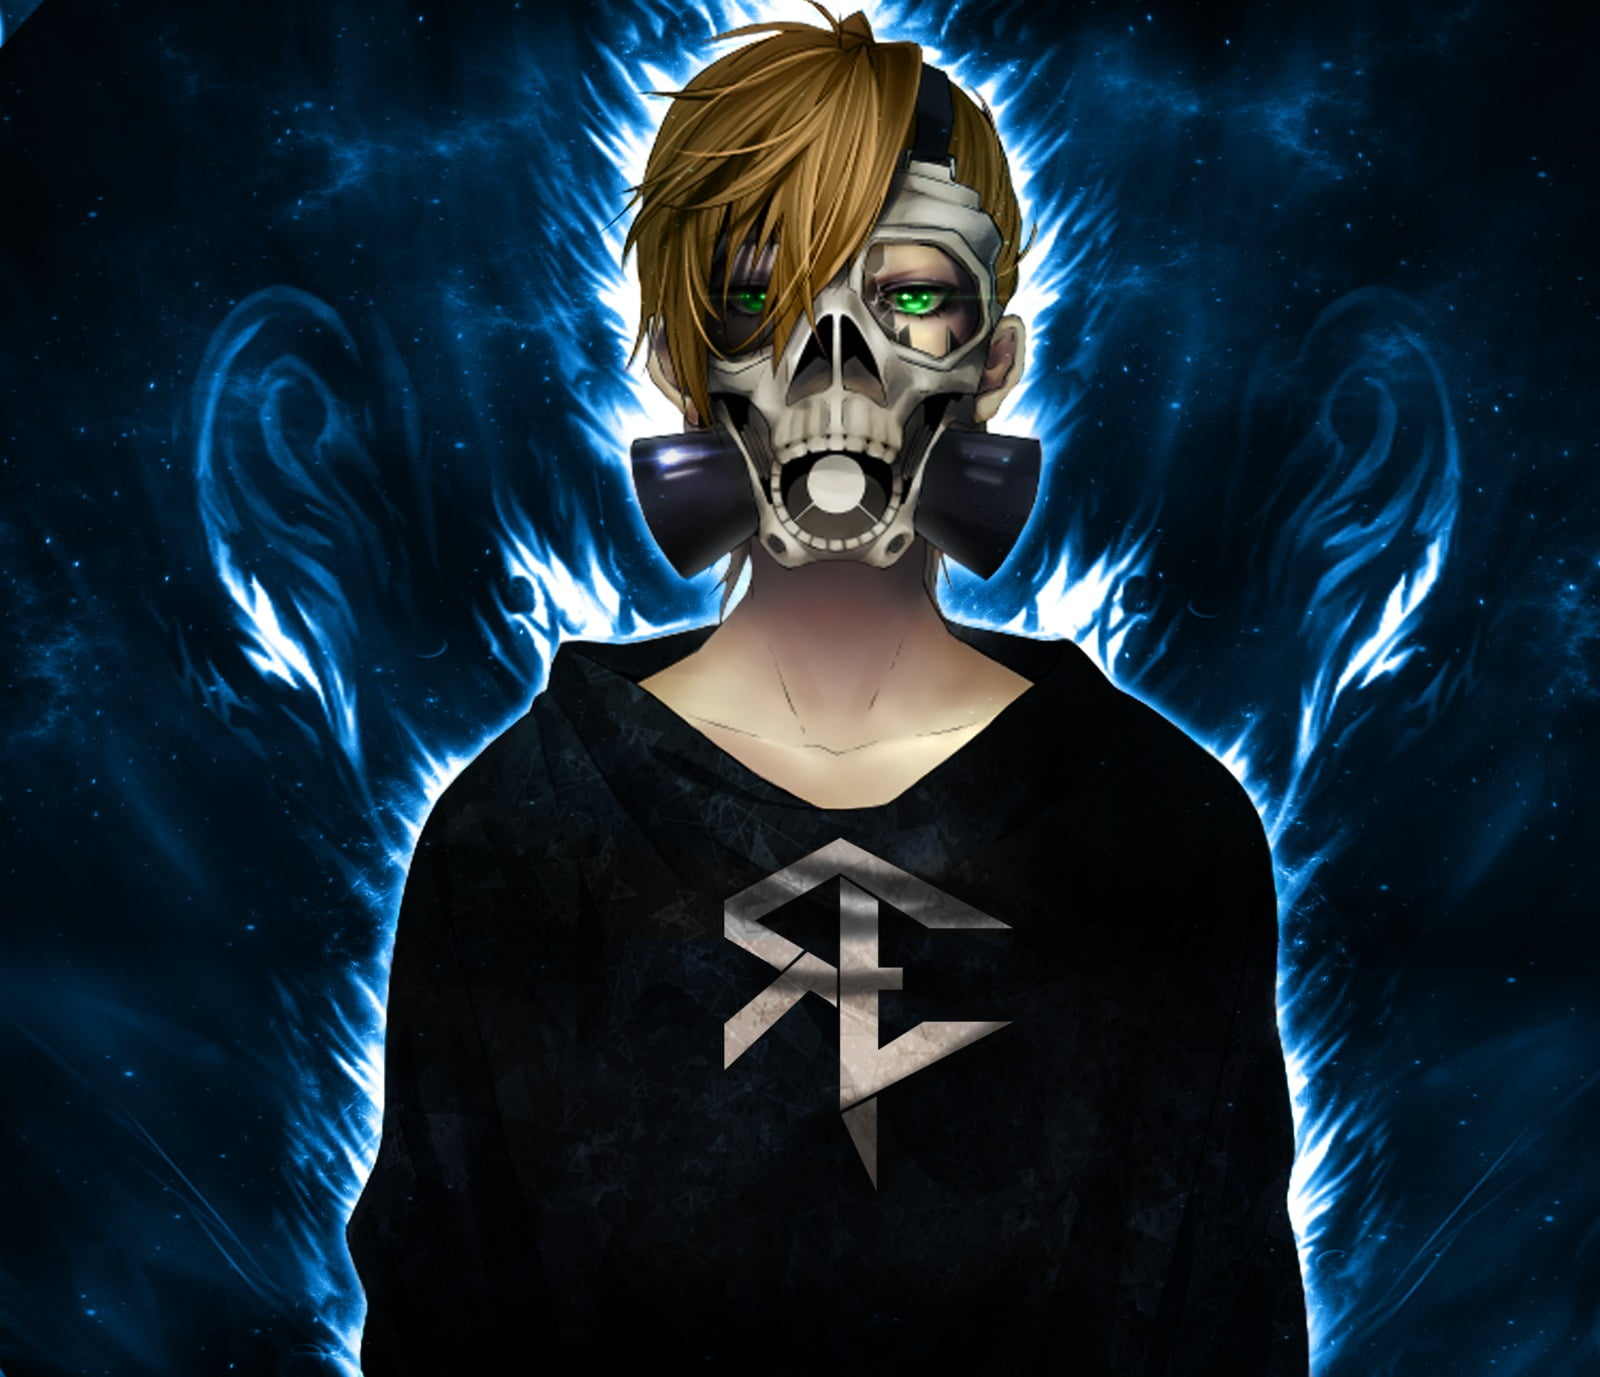 gas masks anime skull fire wallpaper 1b324397fdde142cfcdbdafddd2a955e